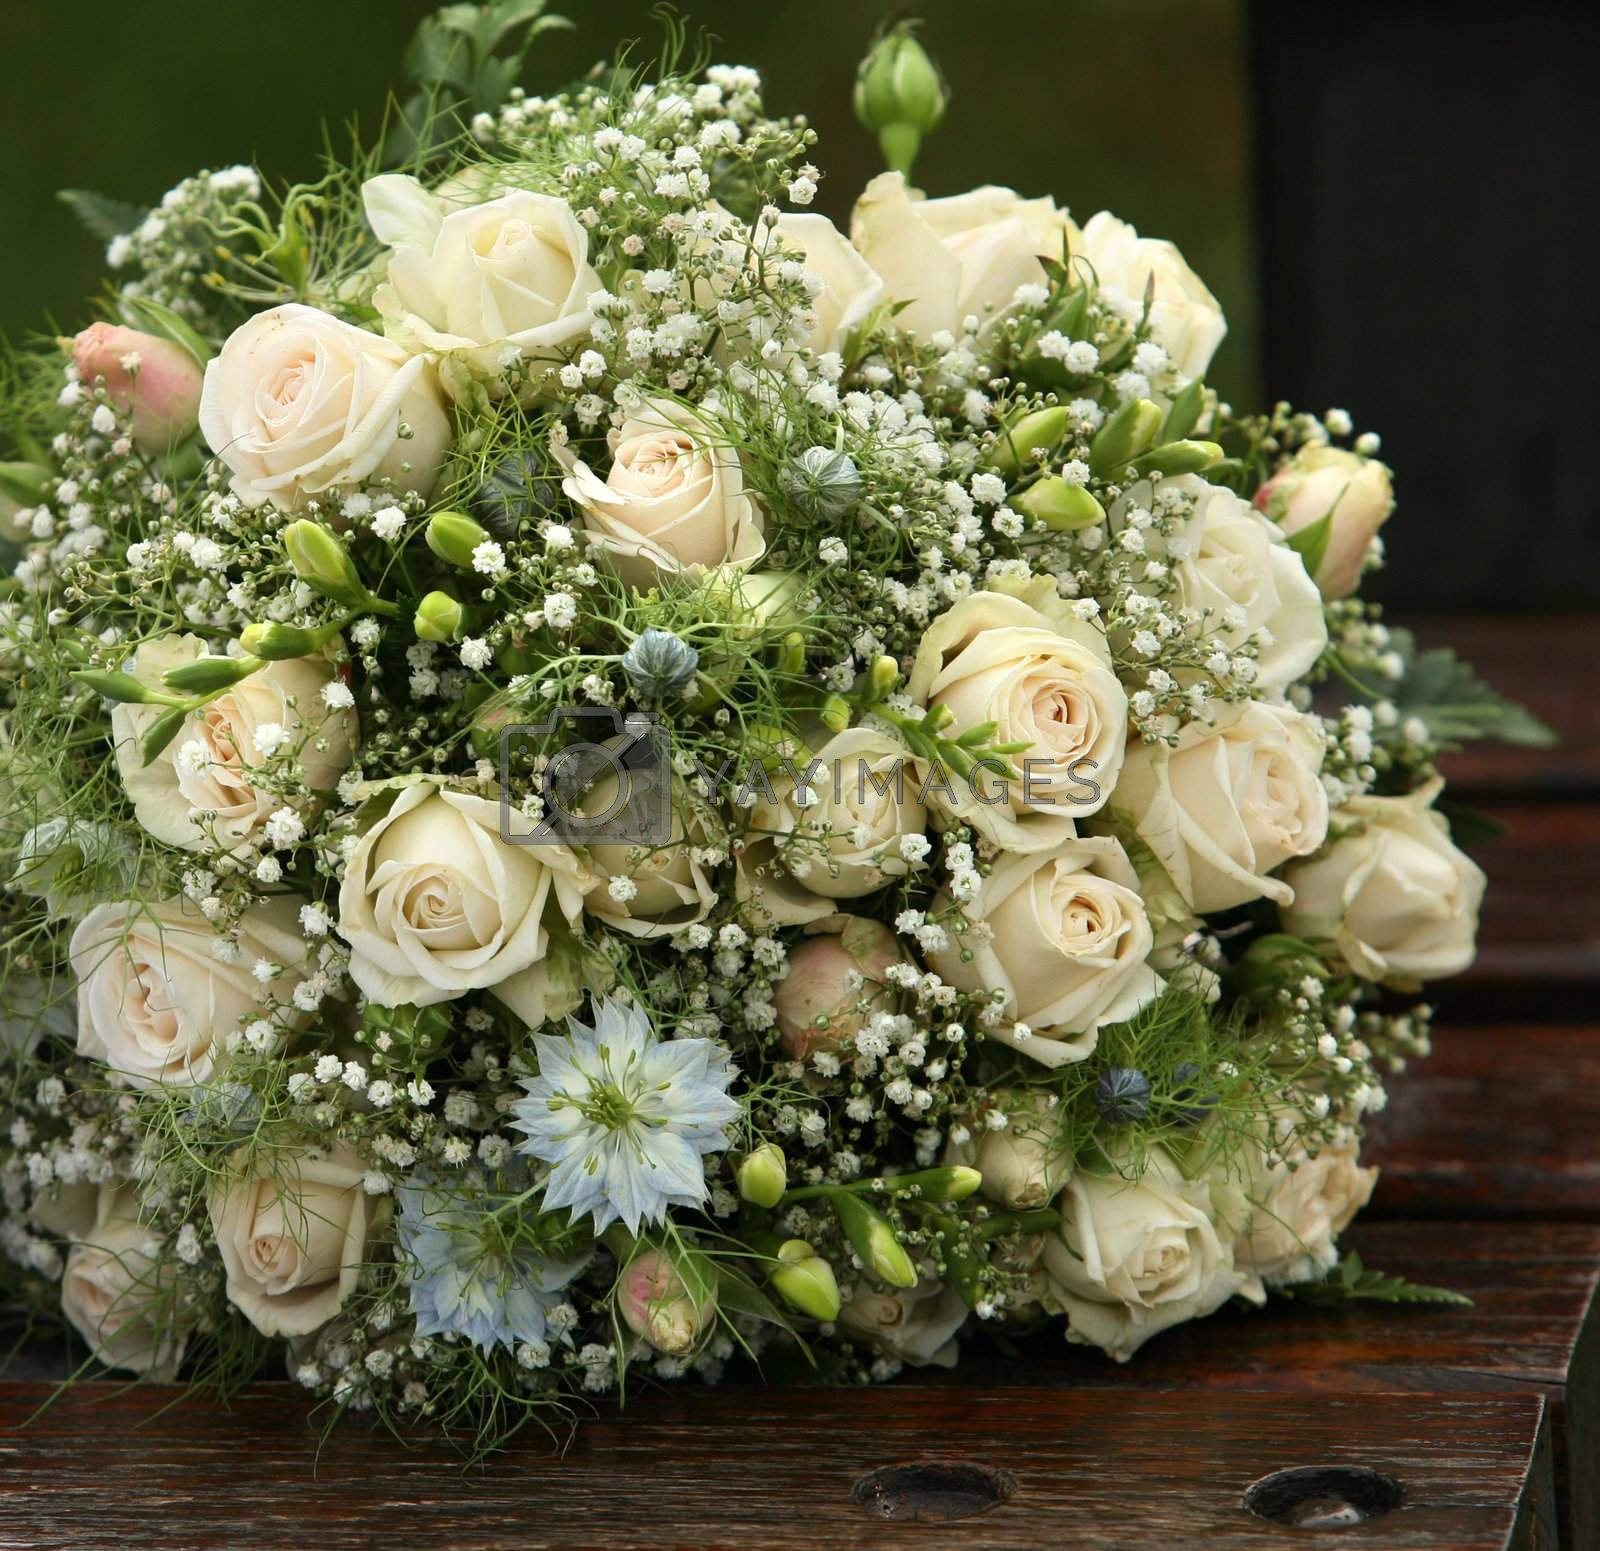 The forgotten wedding bouquet from roses